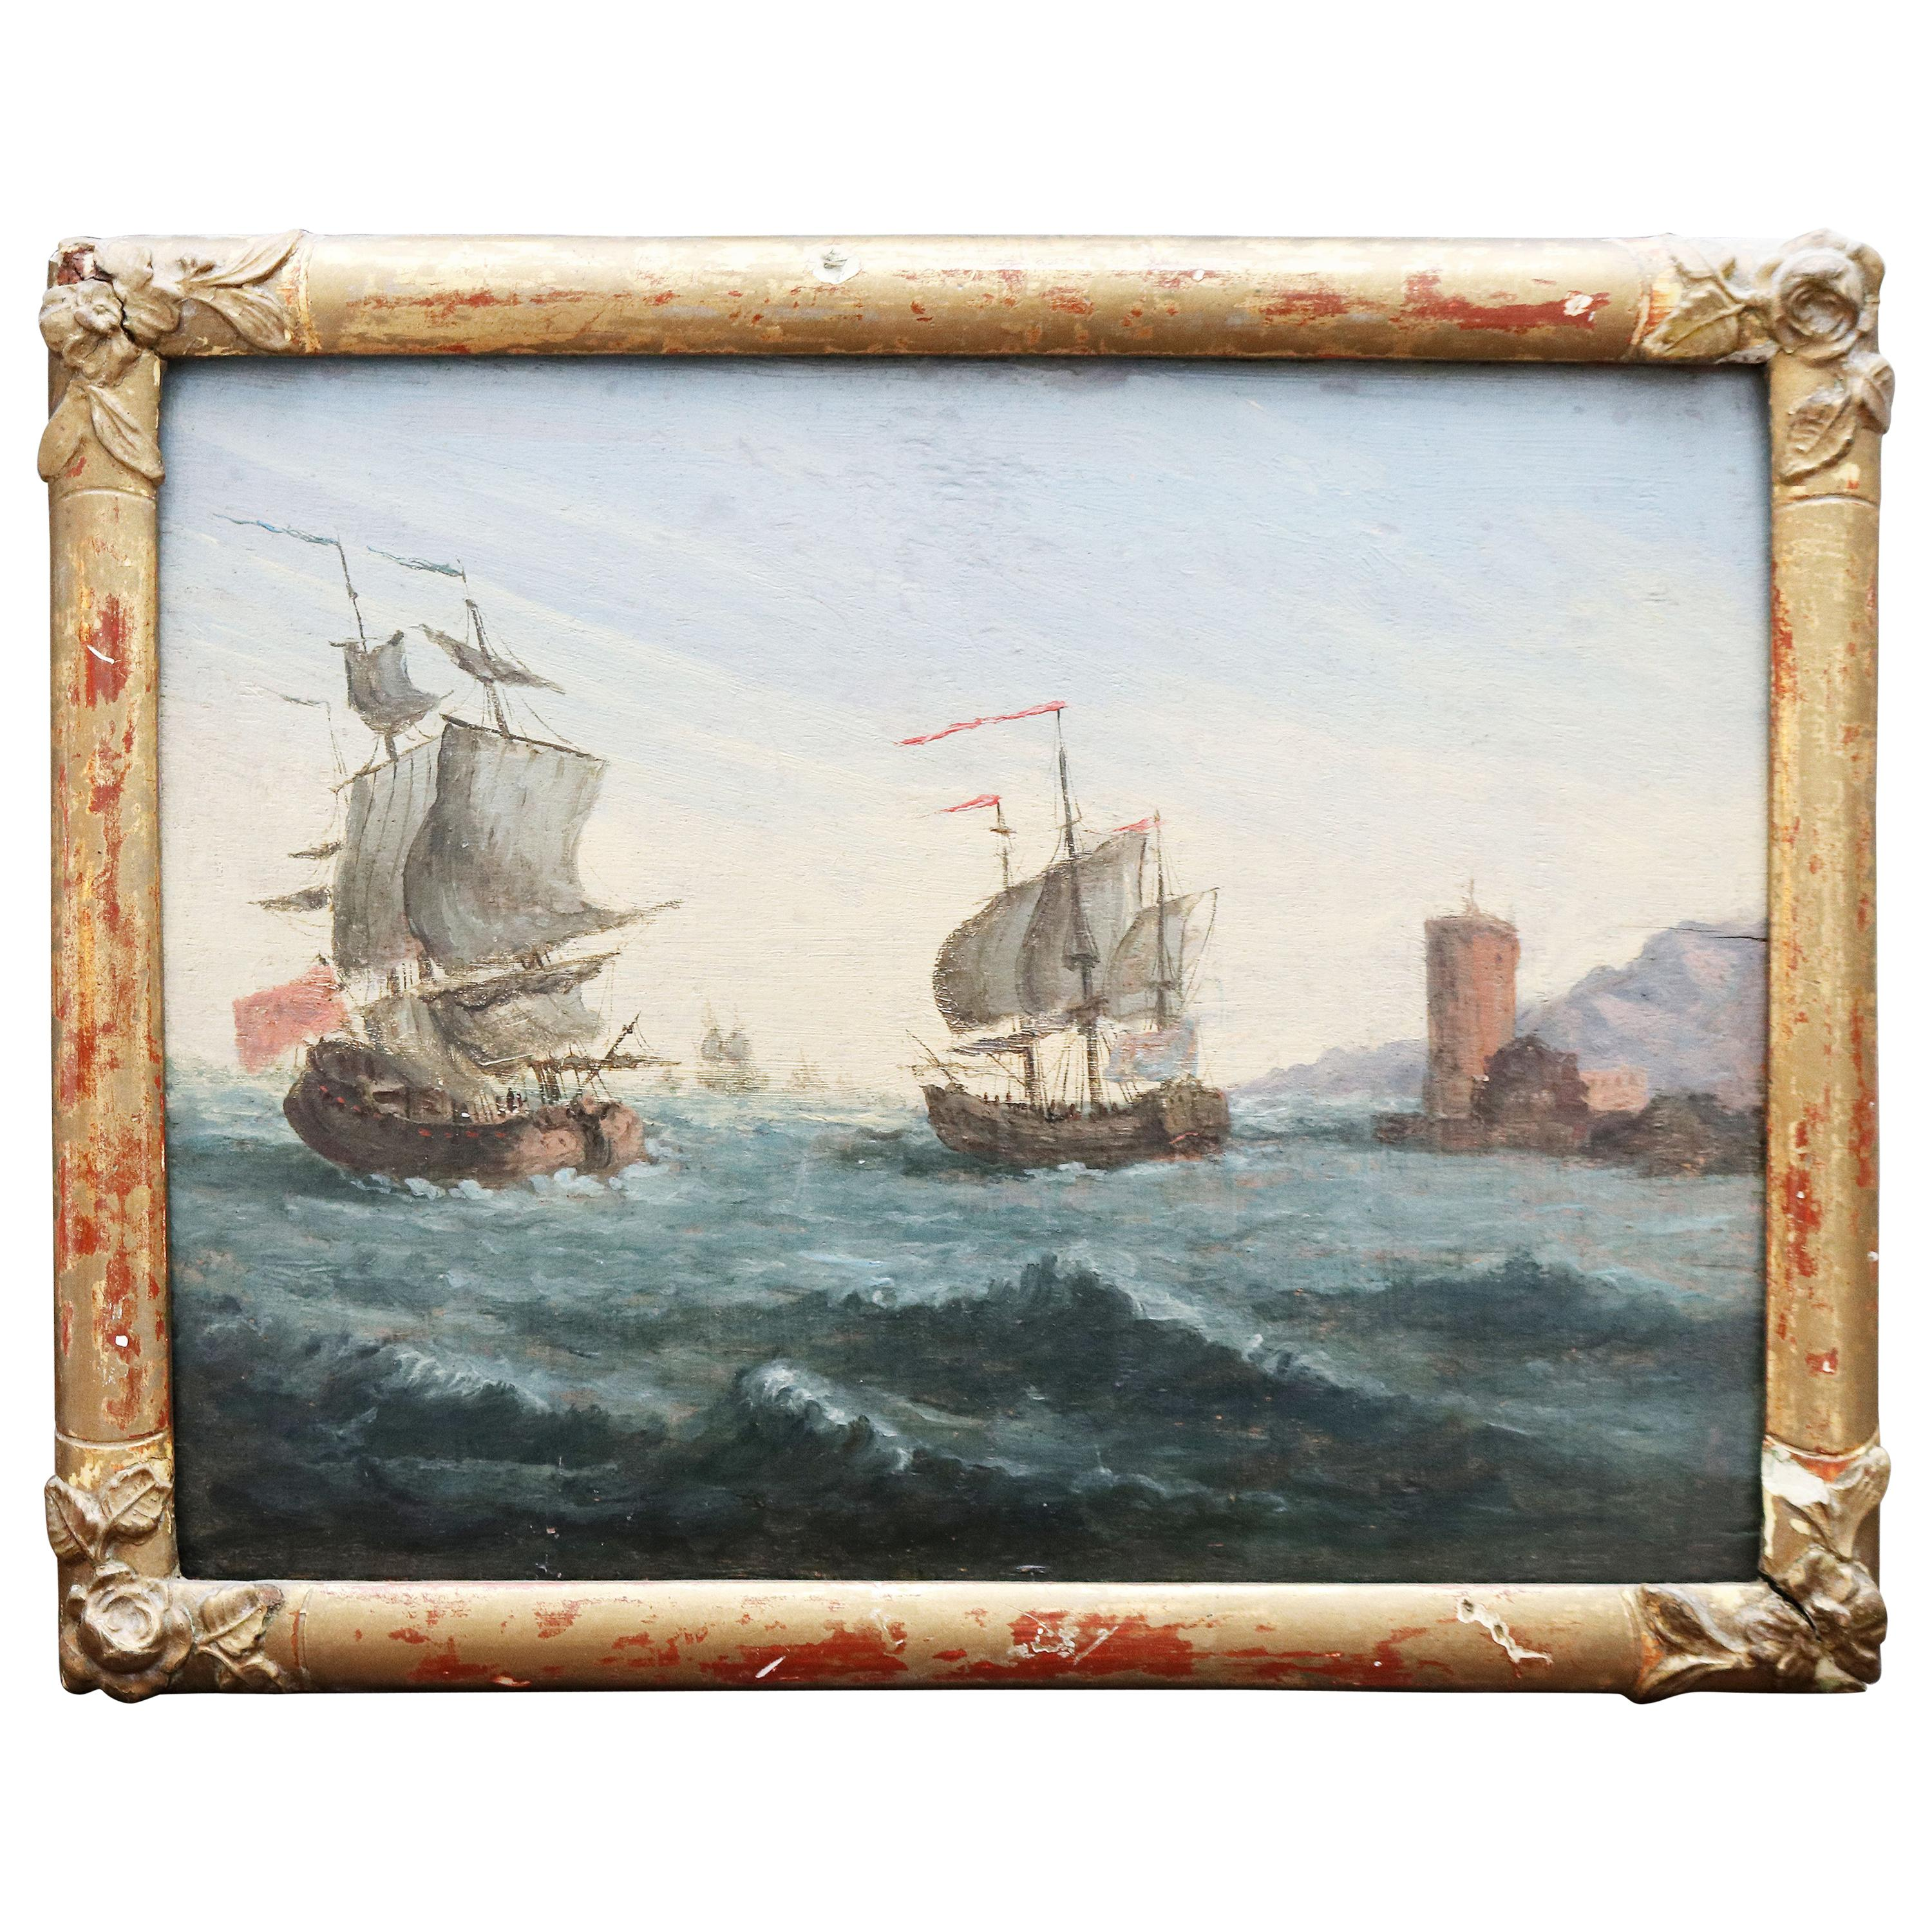 19th Century French Marine Signed Oil on Wood Painting with Two Galleons